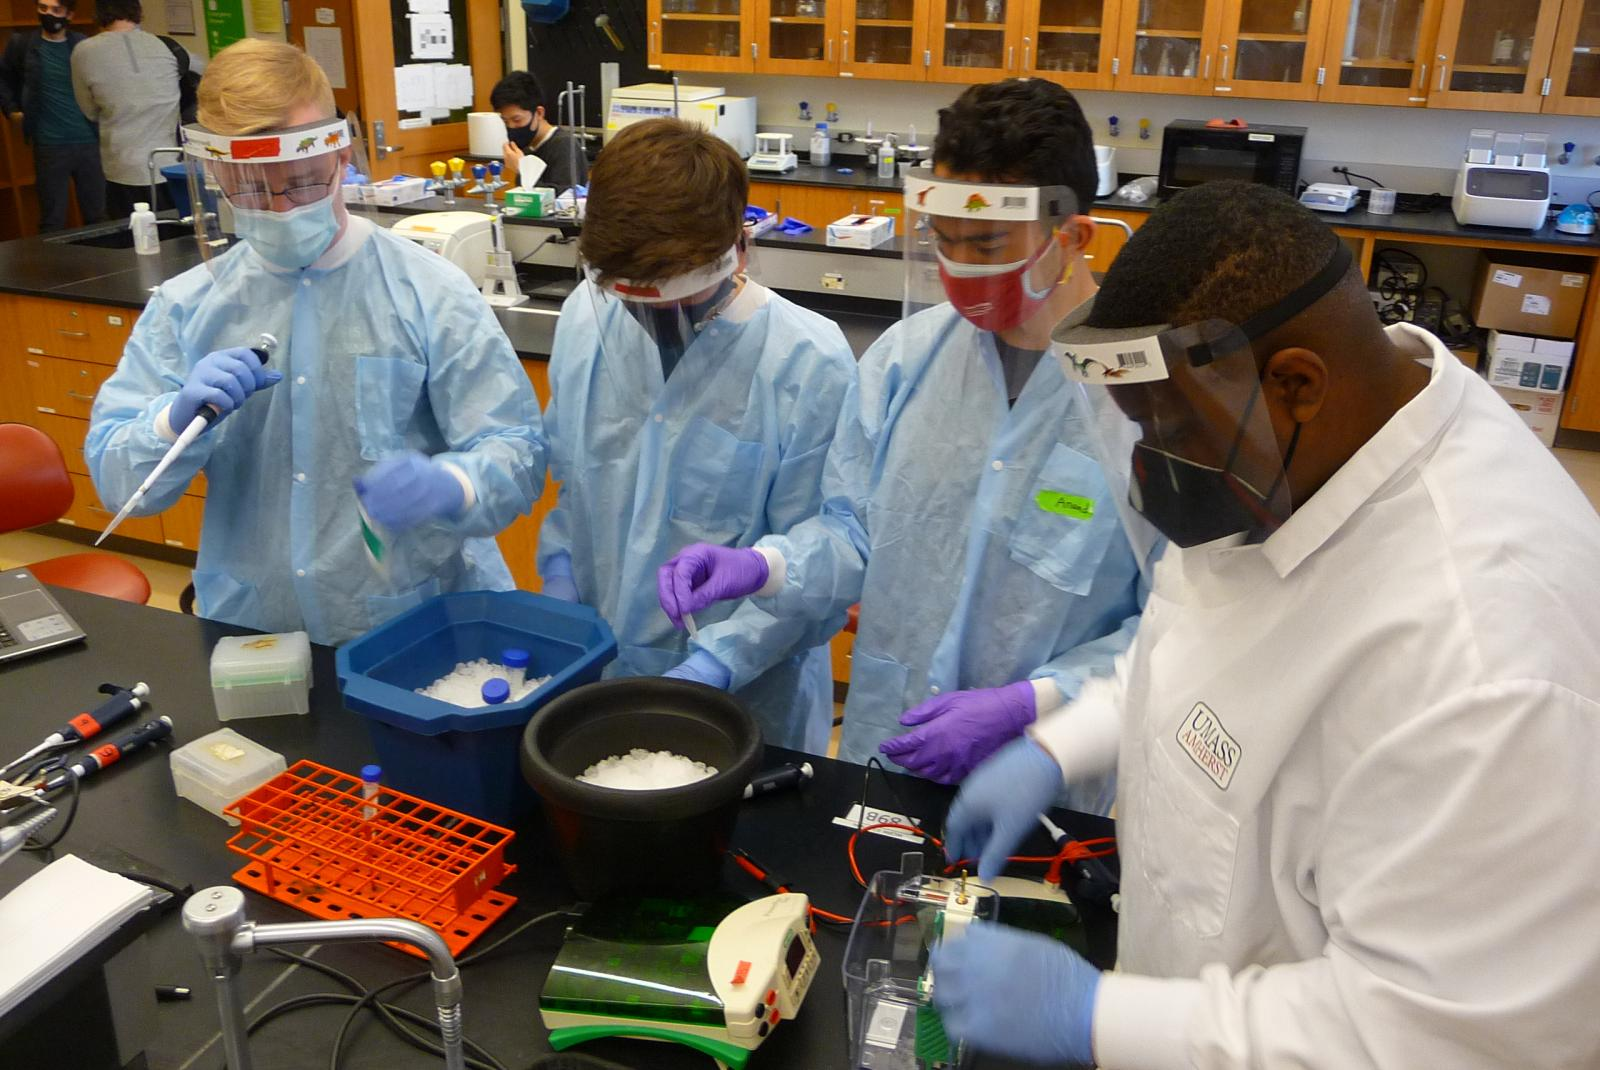 Four students in full PPE conduct an experiment at a lab bench